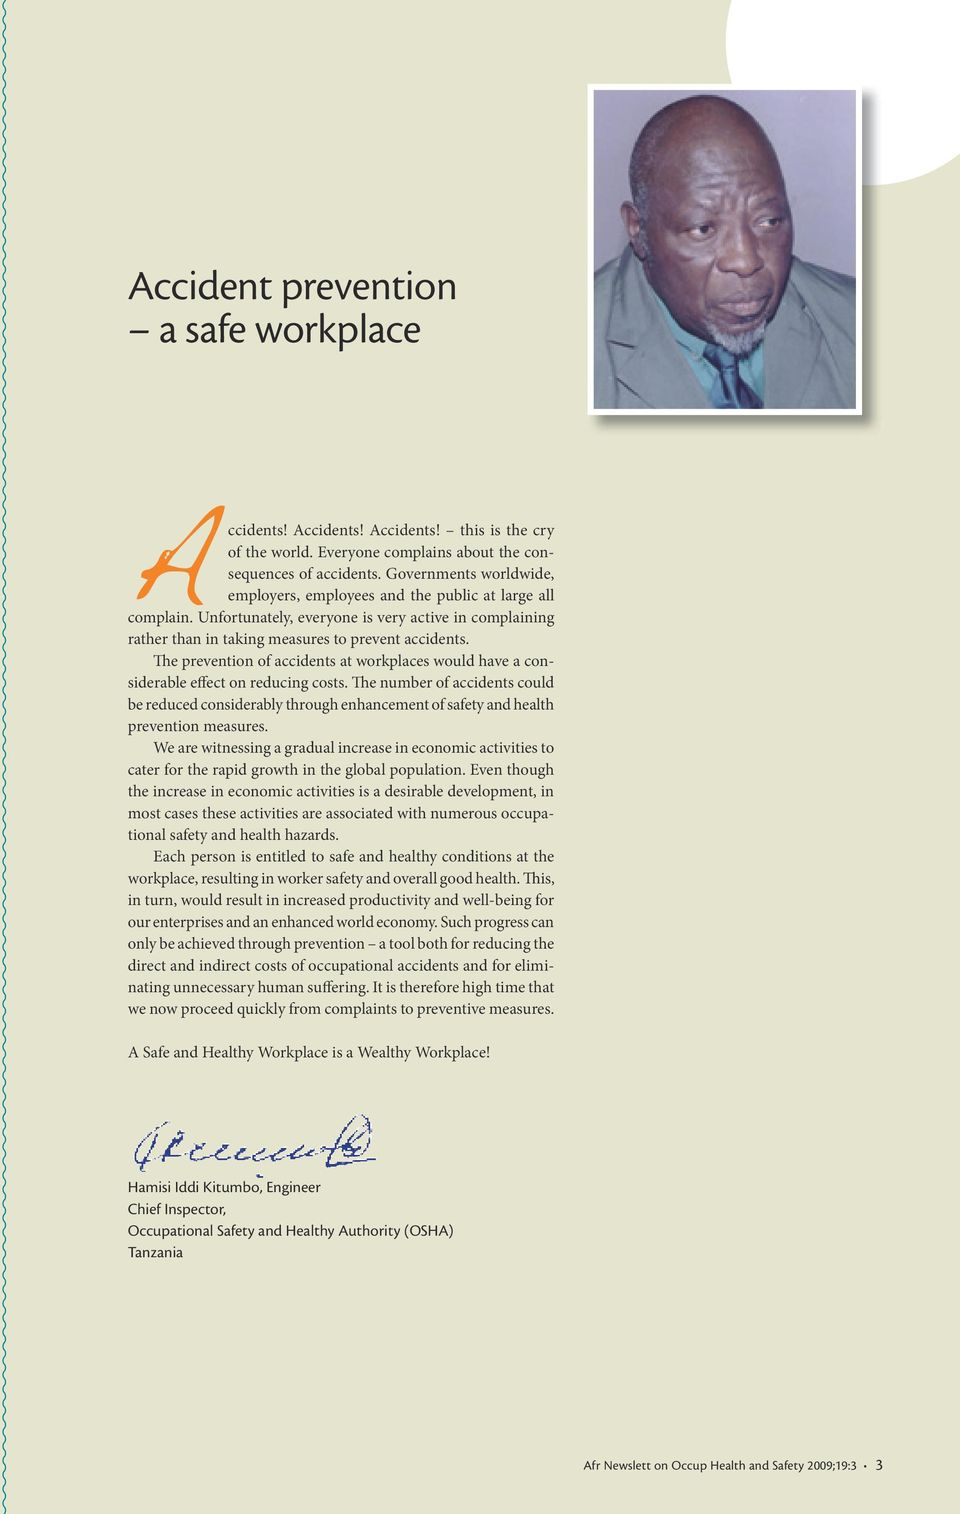 The prevention of accidents at workplaces would have a considerable effect on reducing costs.